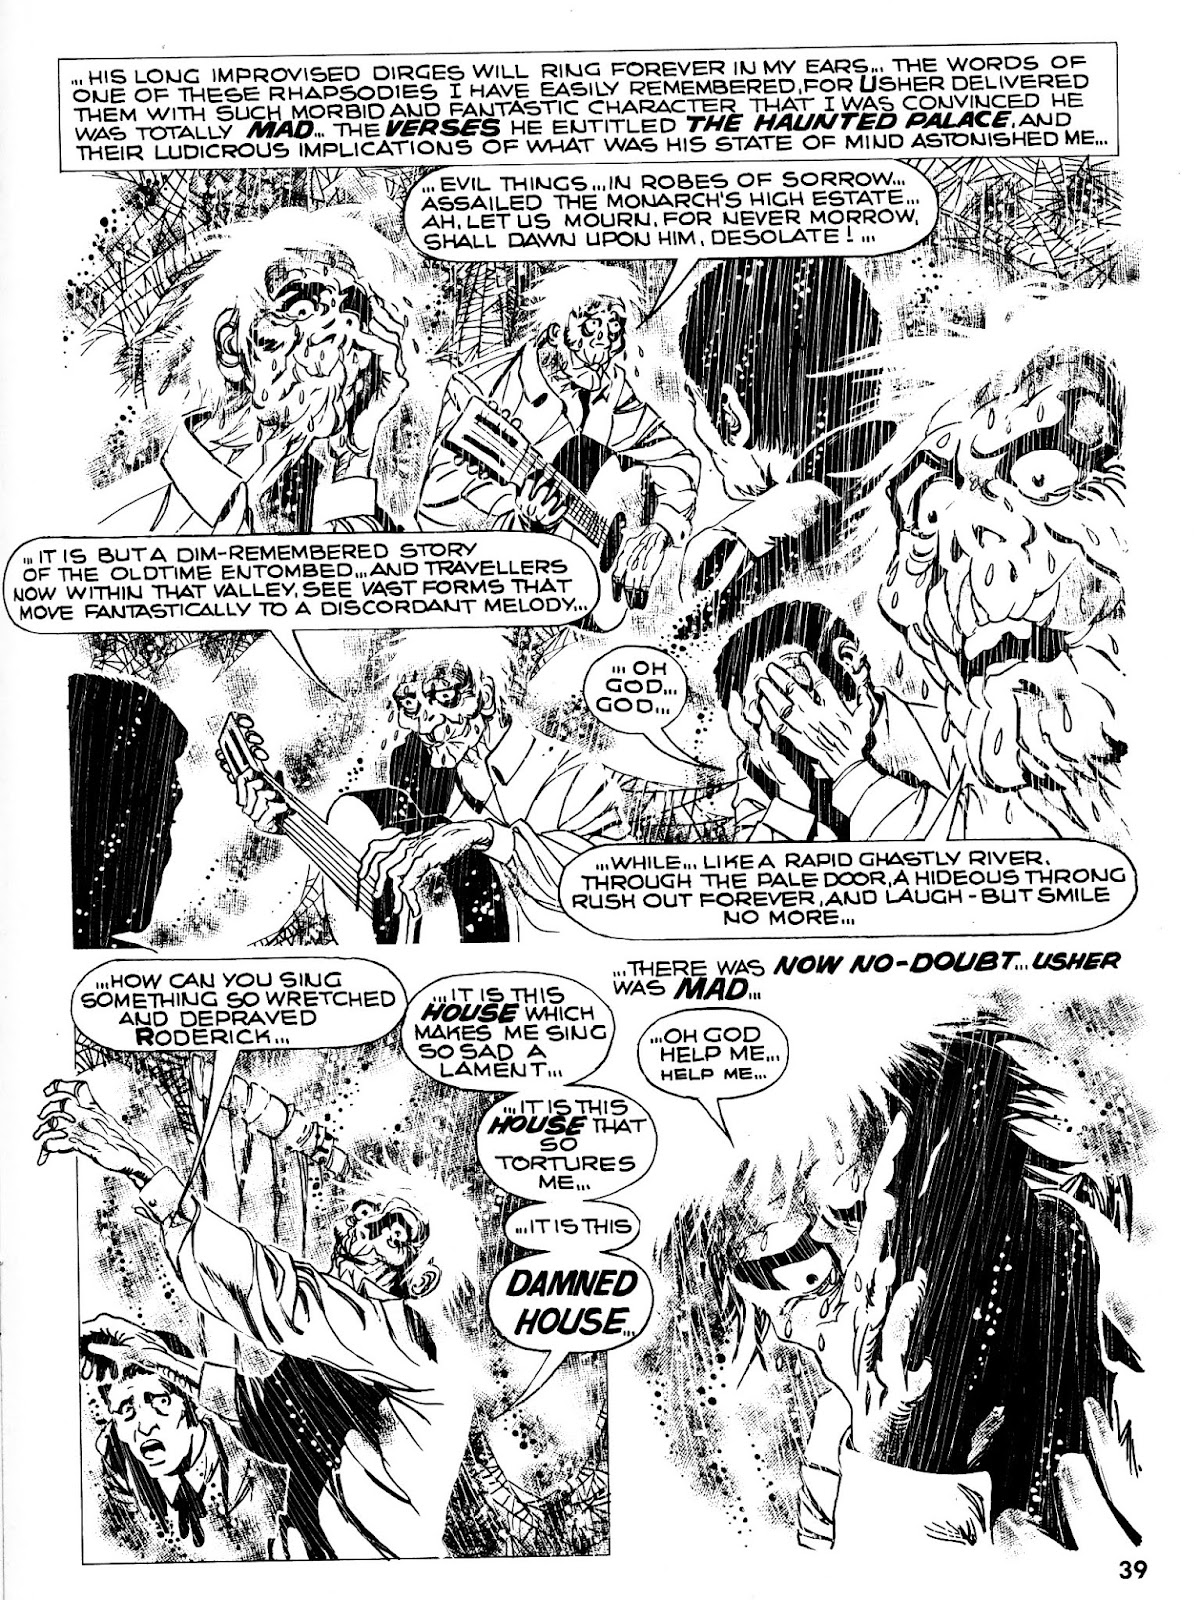 Scream (1973) issue 3 - Page 39